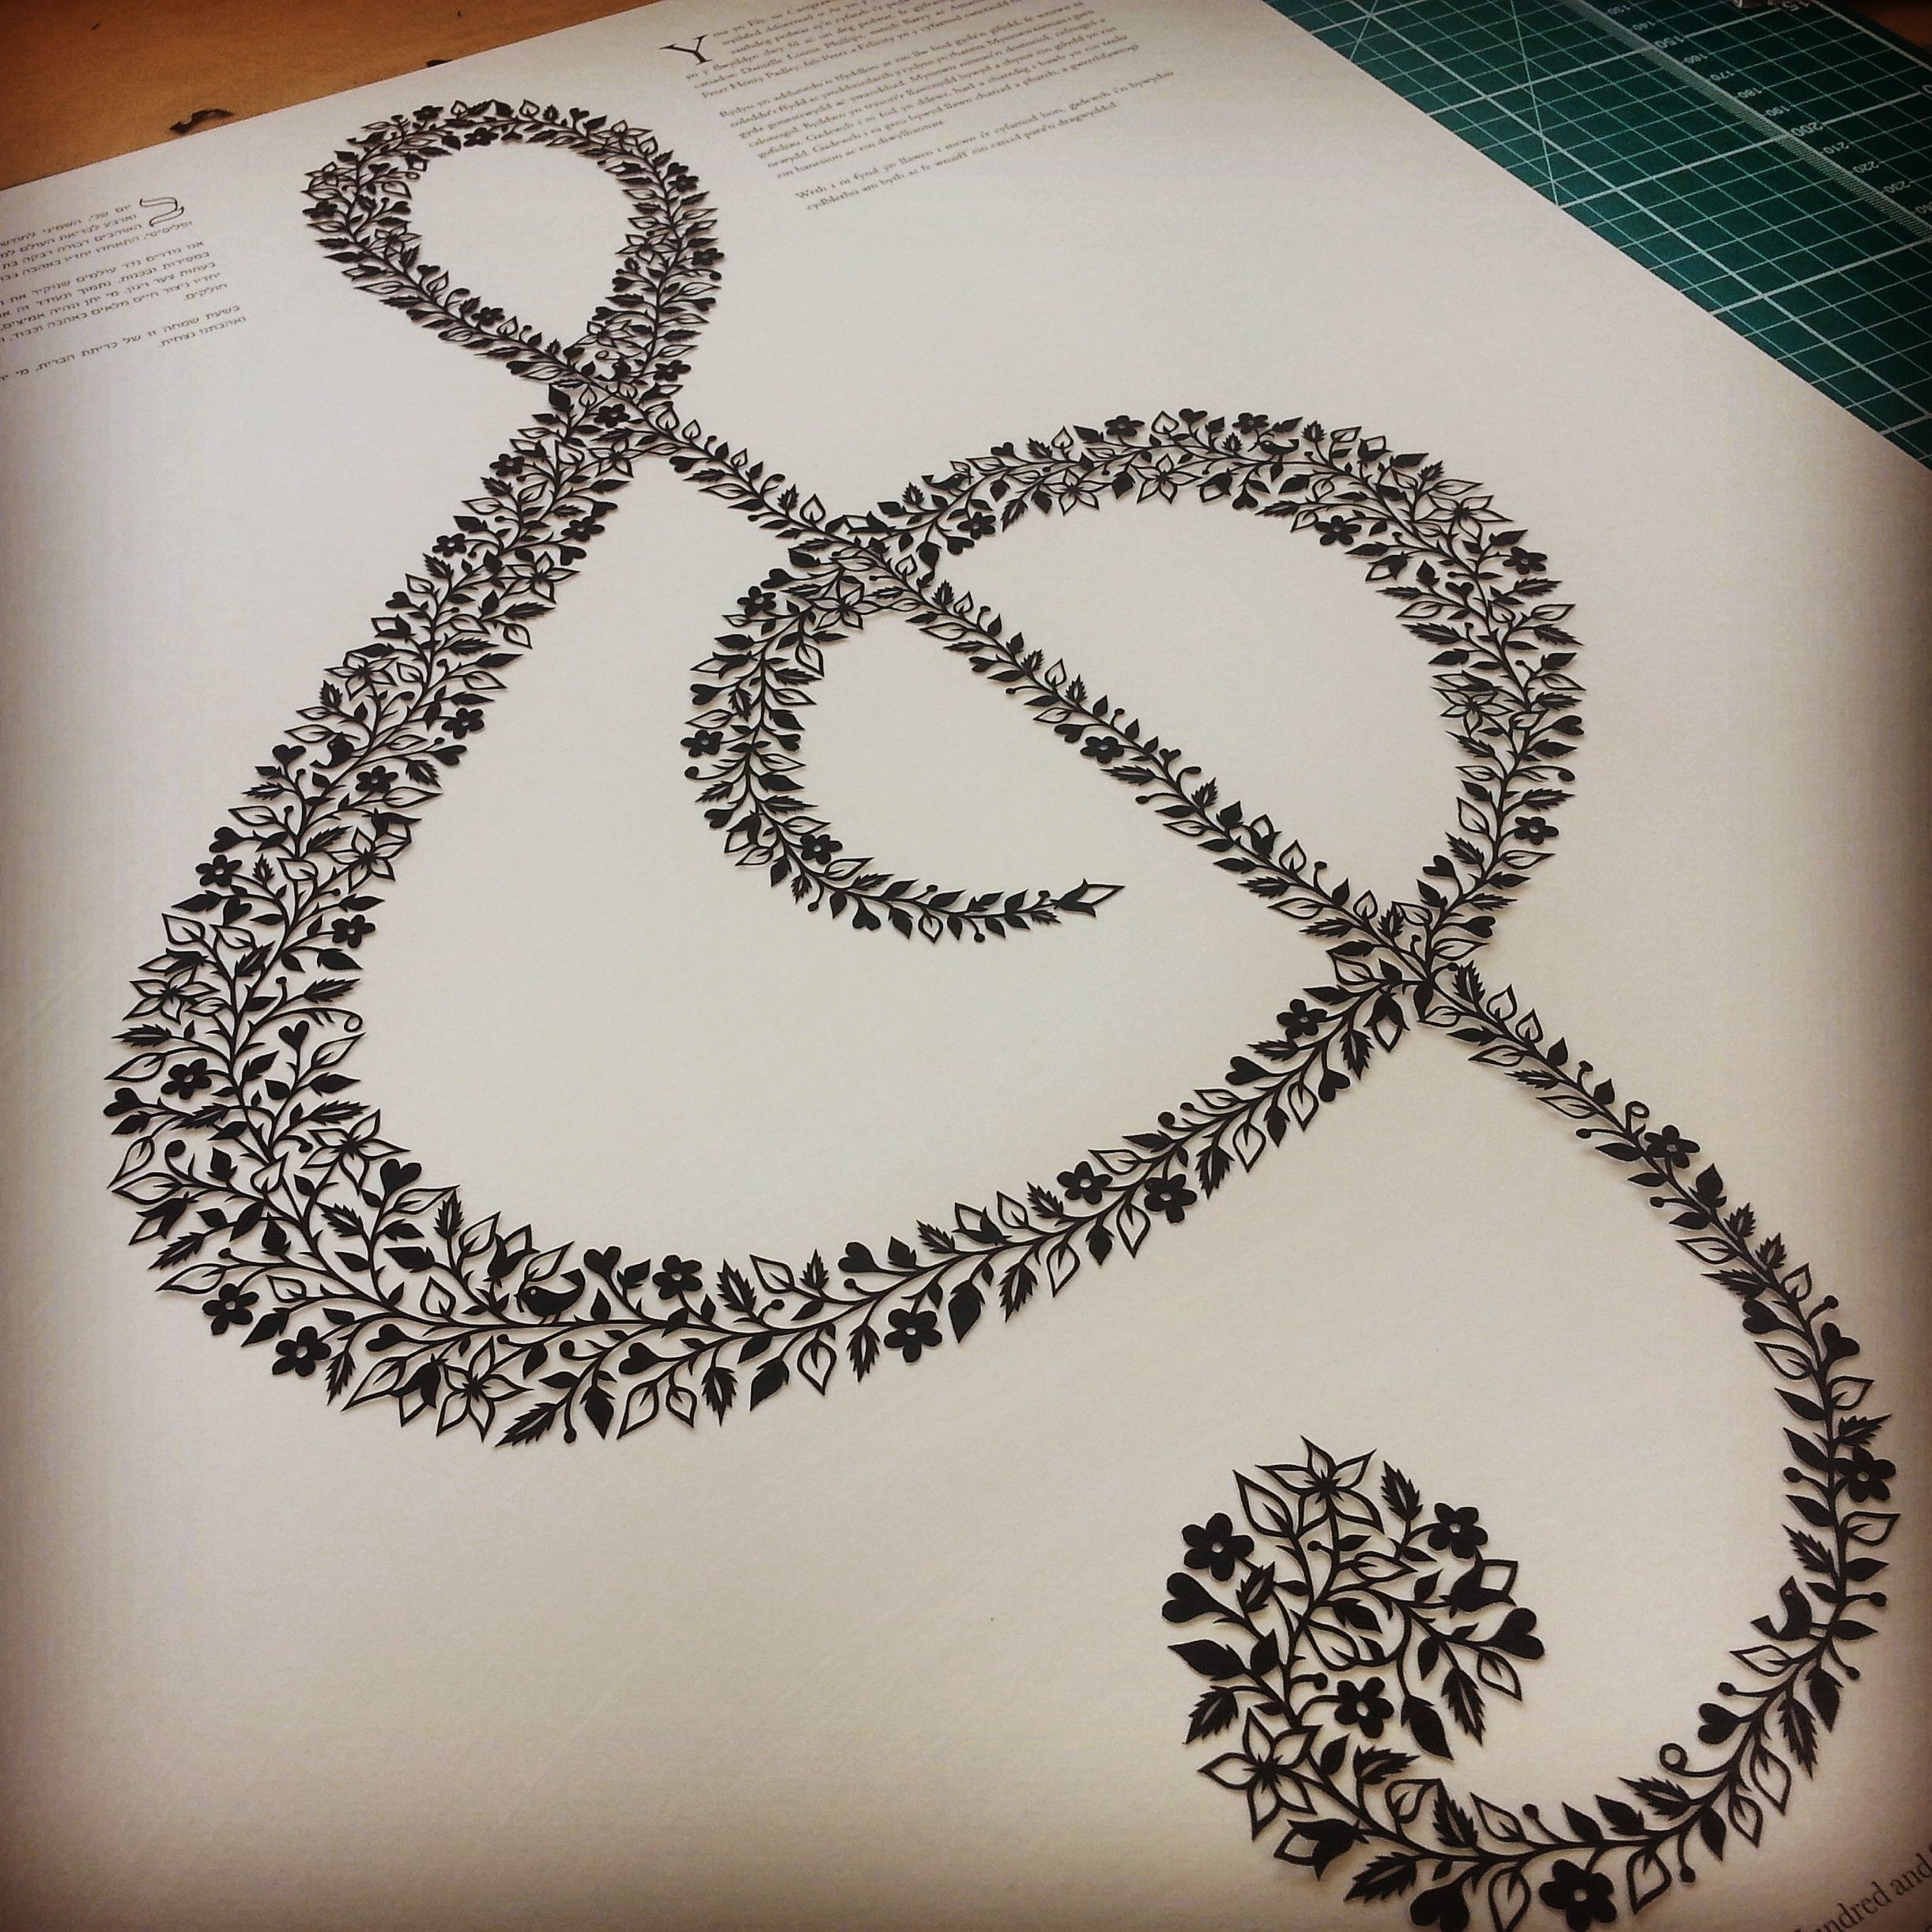 Treble Clef papercut by Suzy Taylor